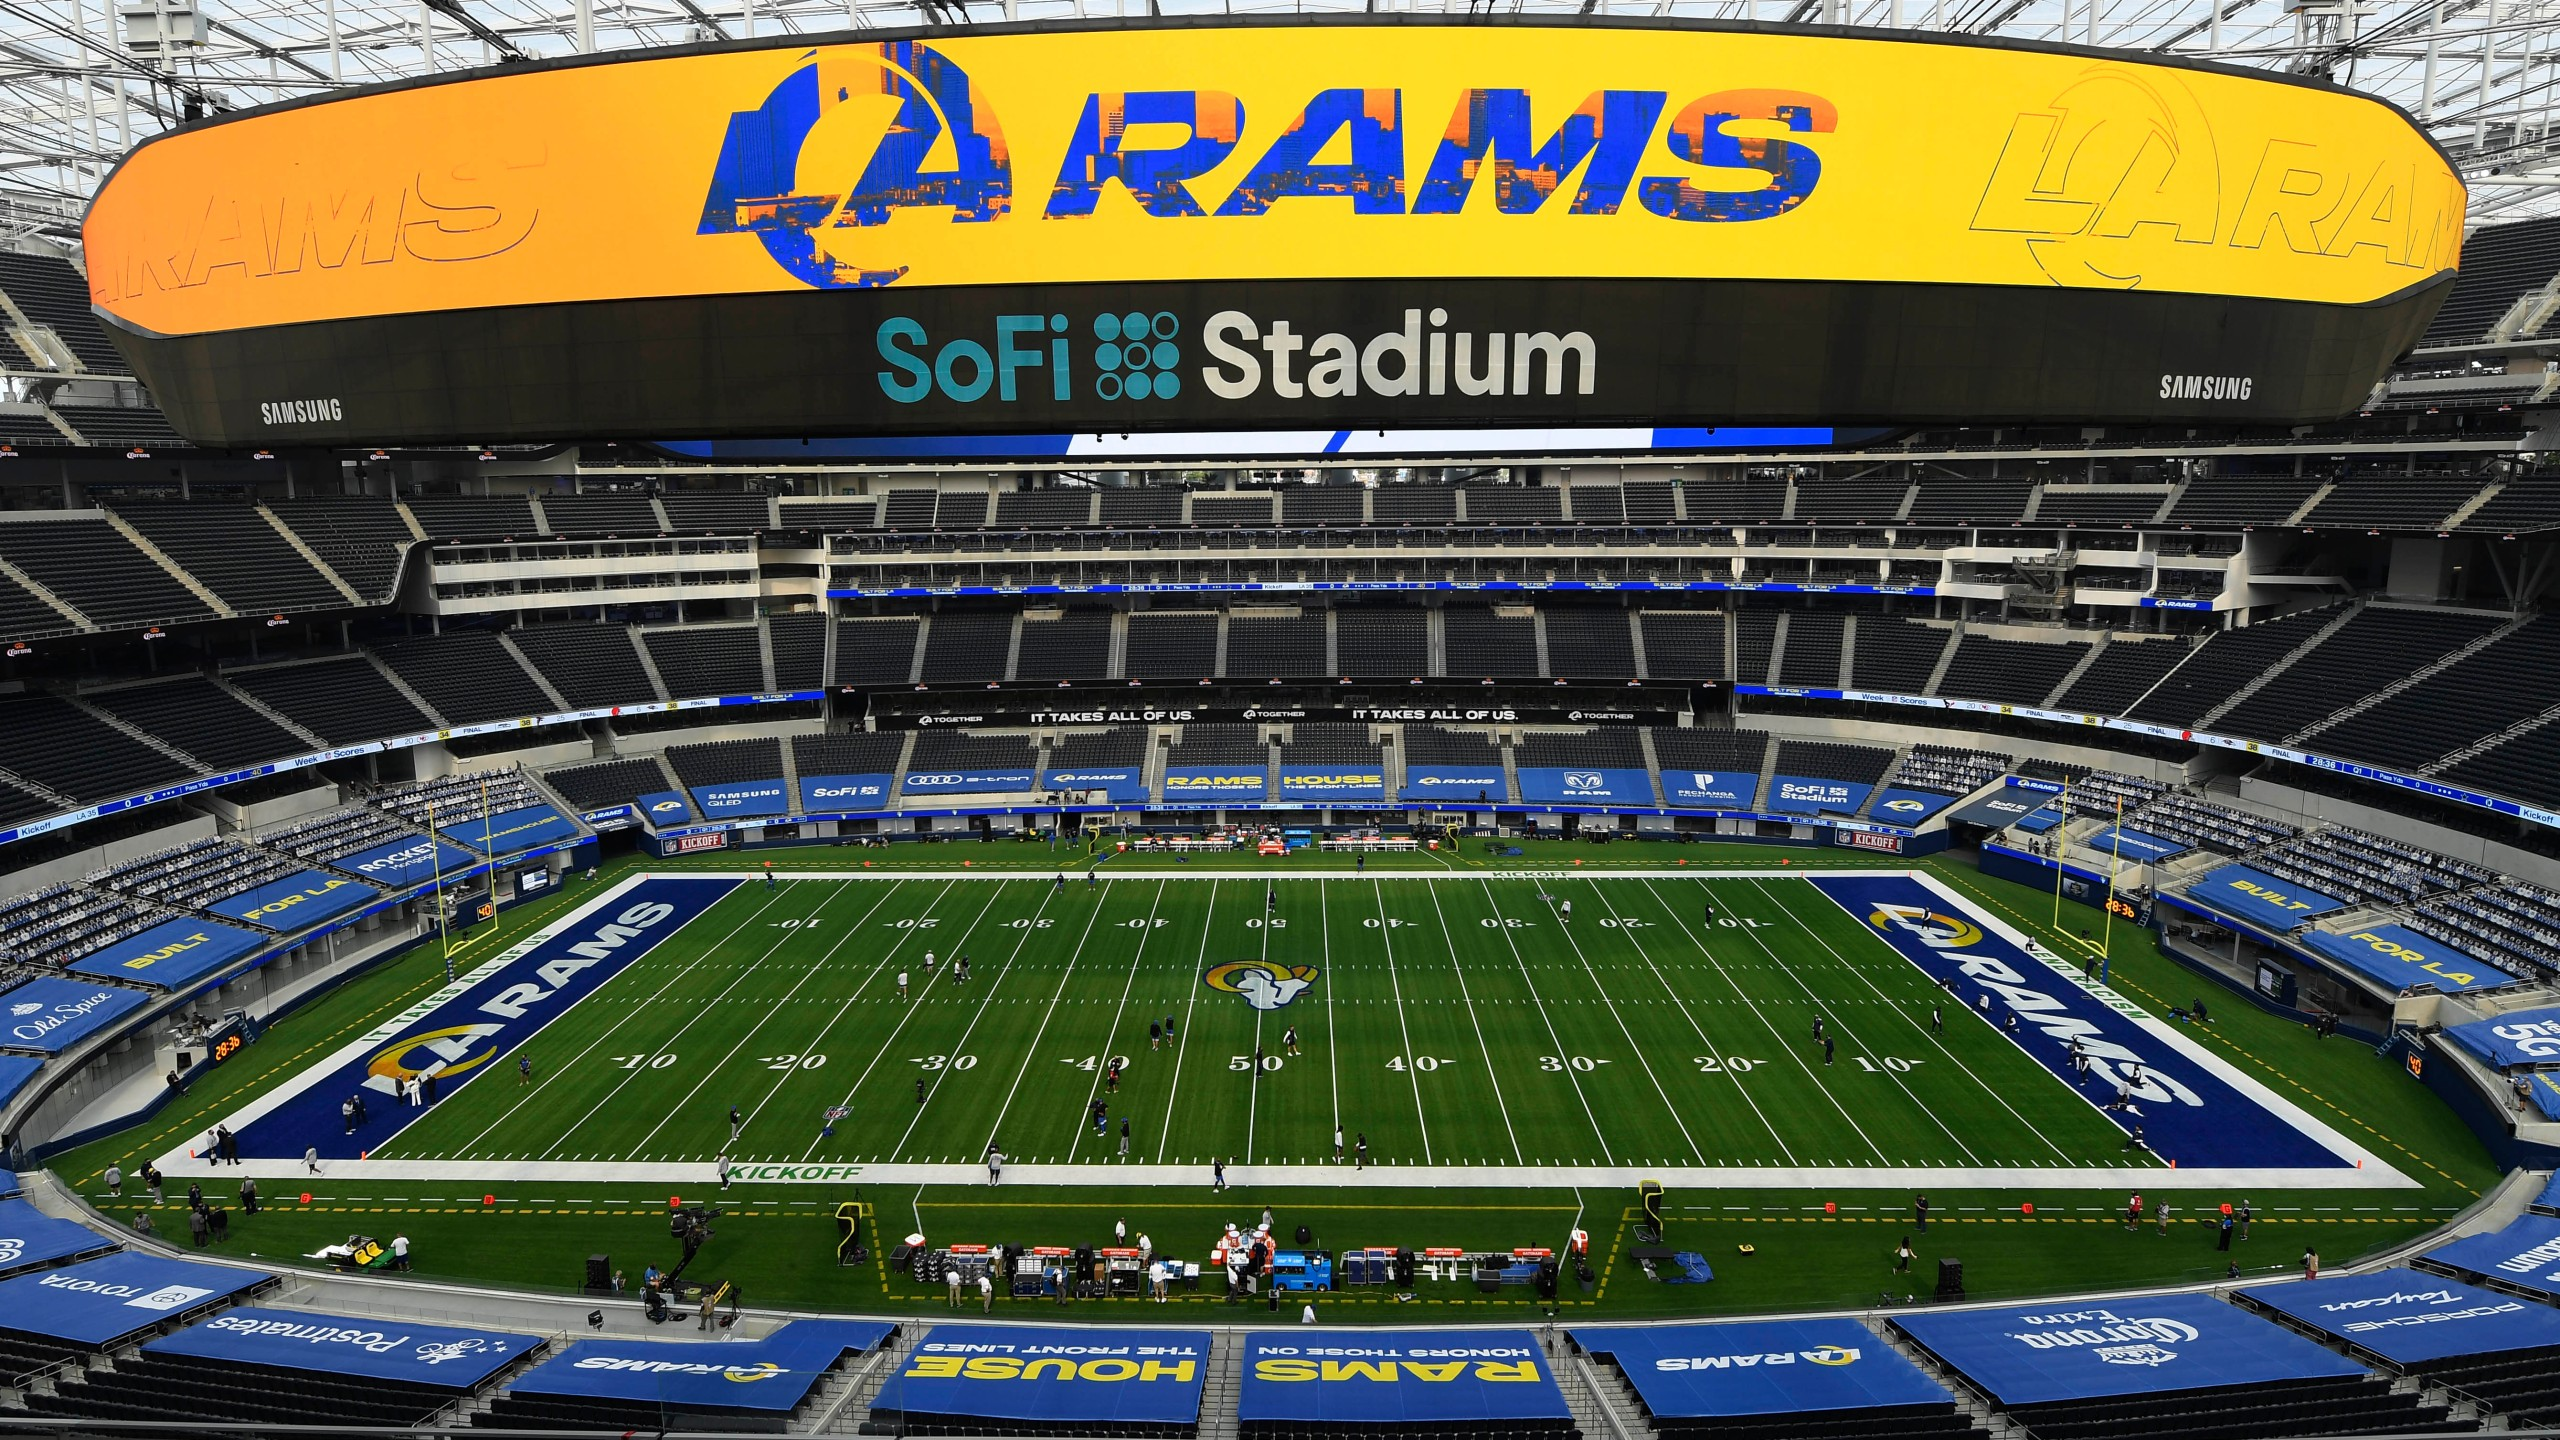 A general view of the new Sofi Stadium before the game between the Los Angeles Rams and the Dallas Cowboys on September 13, 2020 in Inglewood, California. (Kevork Djansezian/Getty Images)